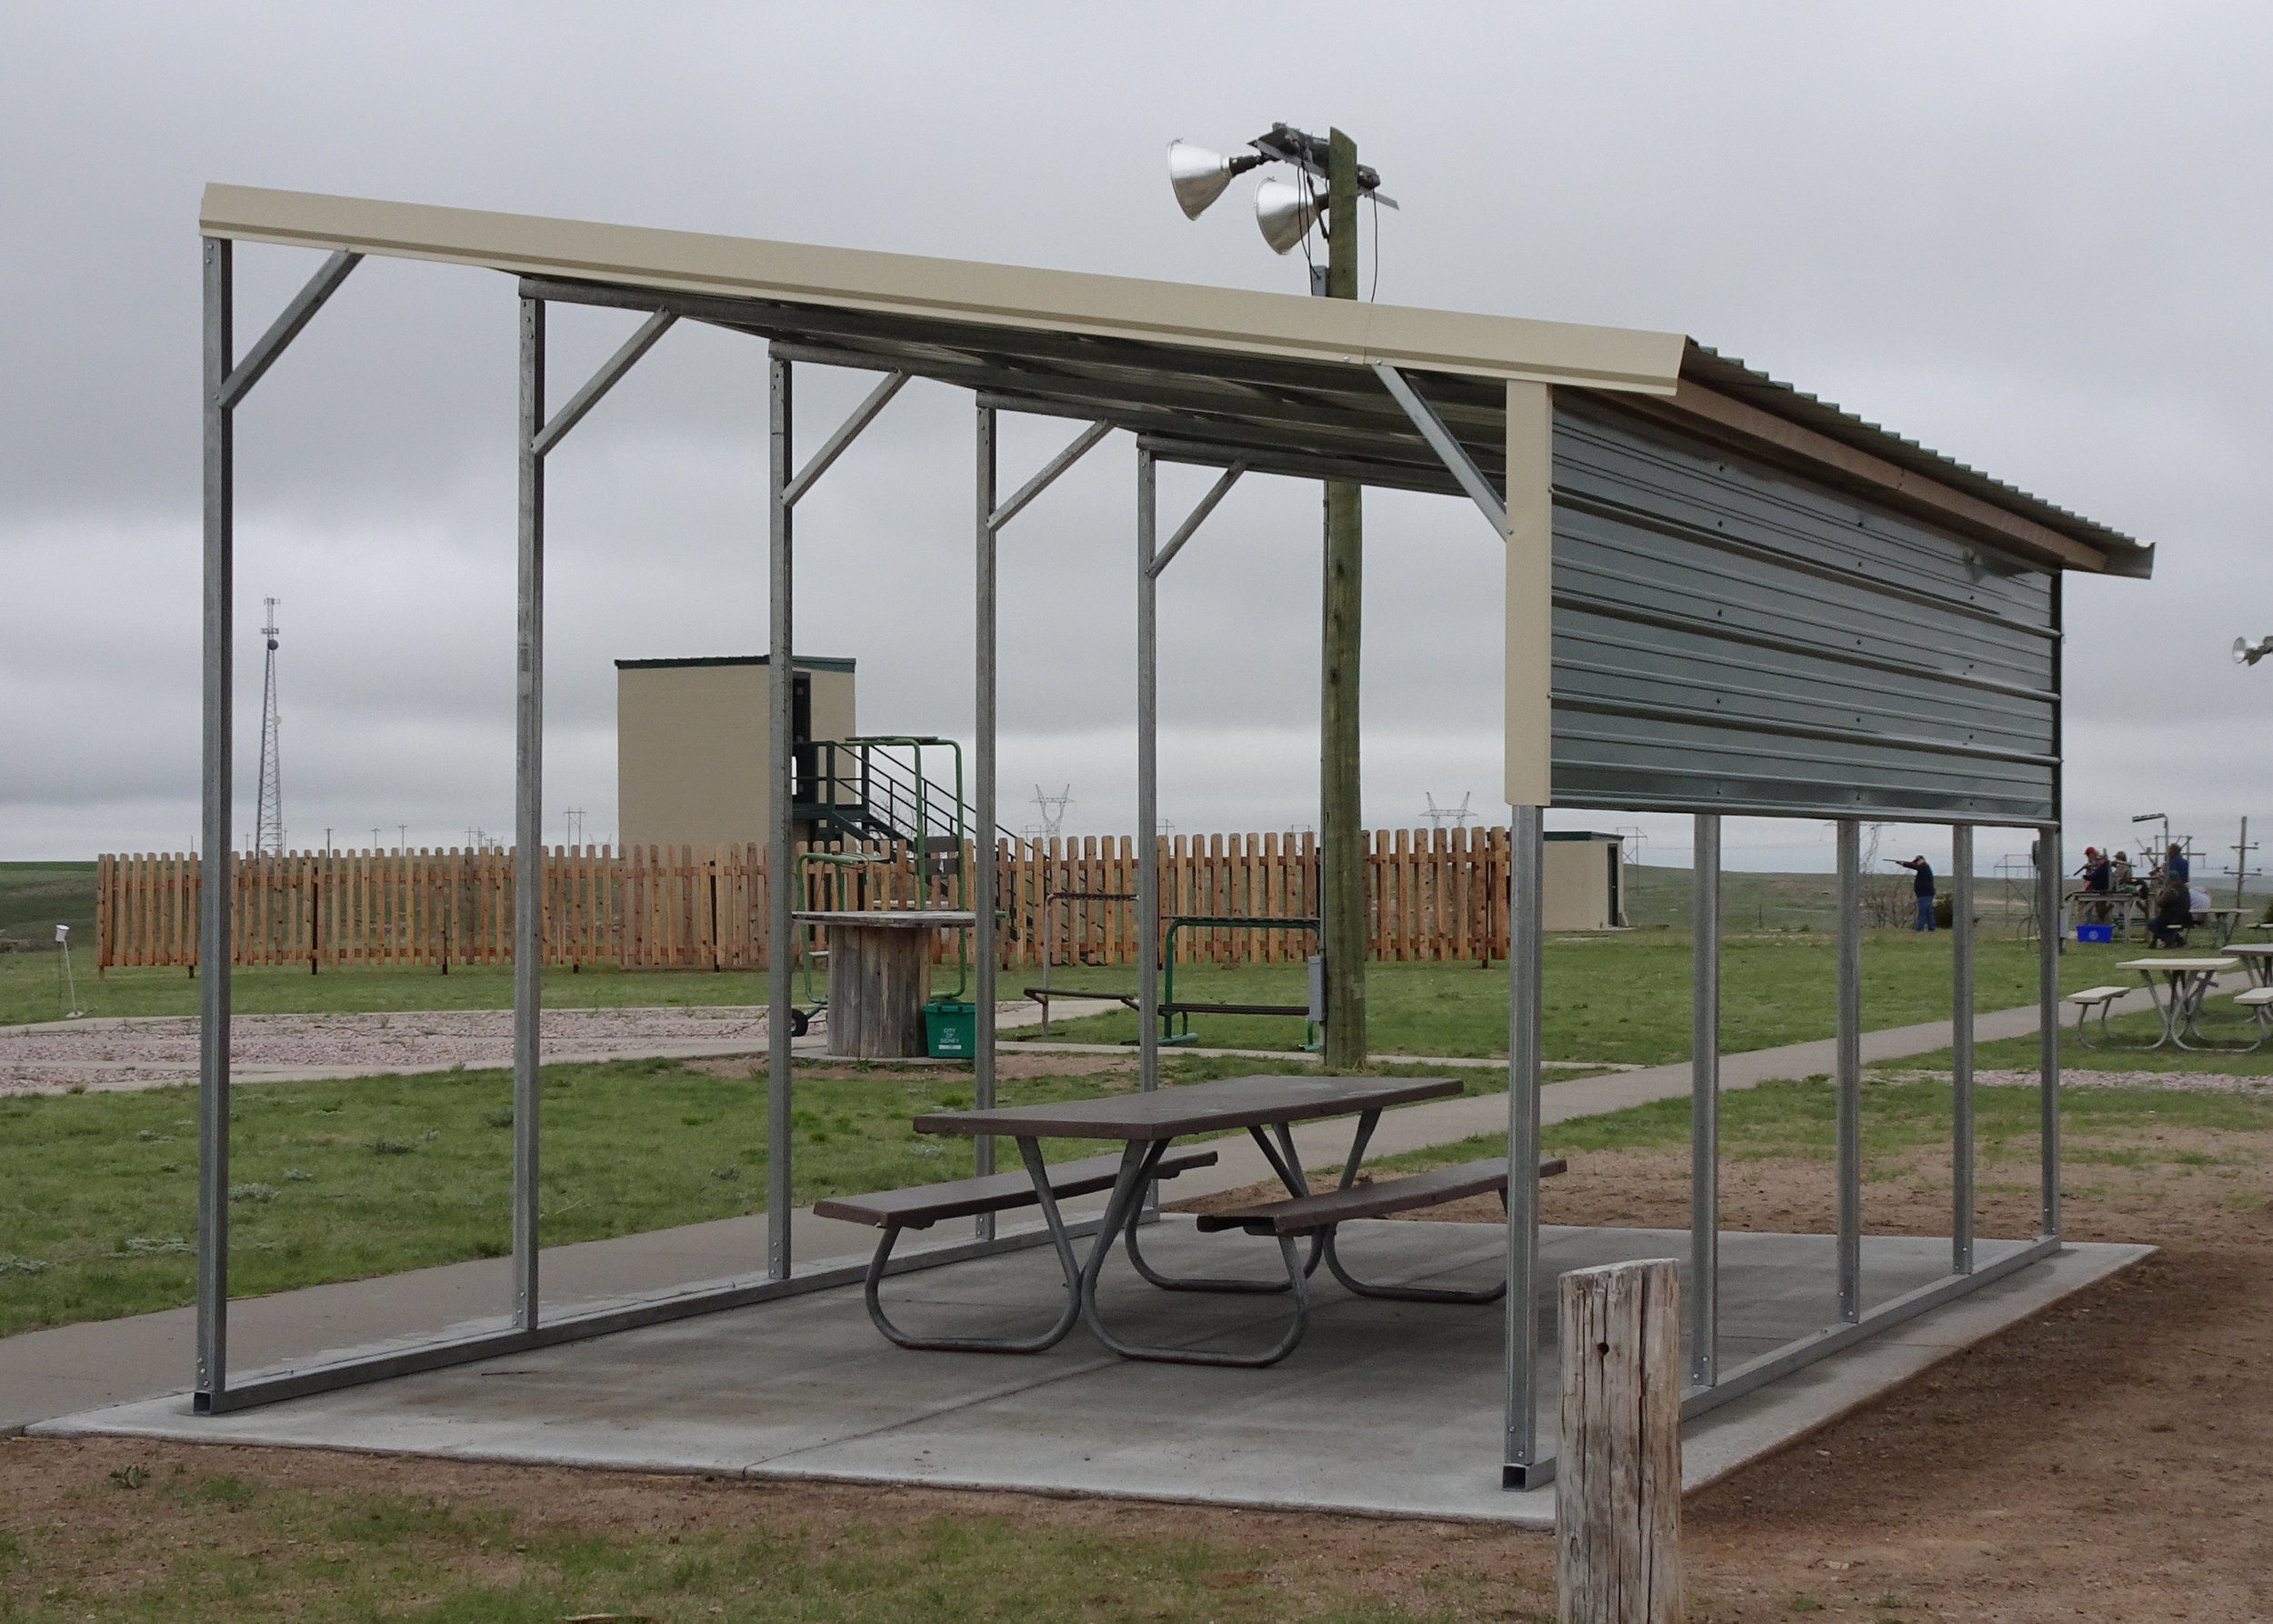 NEW FOR 2018! Shade Structures! - The Sidney Shooting Park has received grant money from the NRA Foundation to build shade structures next to the Trap fields. We now have dugout-style lean-to structures on cement pads, with new gun racks made by Brad Zalesky of Performance Automotive and Towing!